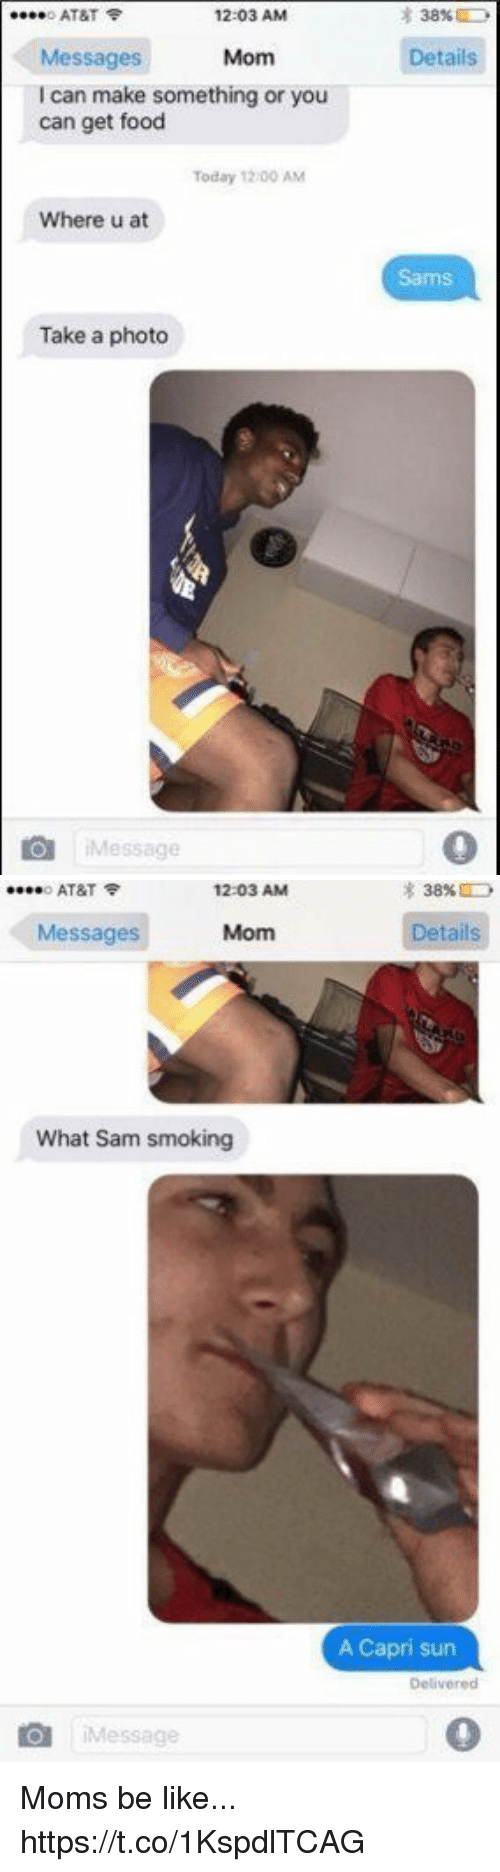 Sams: o AT&T  12:03 AM  38%  Details  Messages  I can make something or you  can get food  Mom  Today 12/00 AM  Where u at  Sams  Take a photo  iMessage   o AT&T令  12:03 AM  38%  Messages  Mom  etails  What Sam smoking  A Capri sun  Delivered  iMessage  0 Moms be like... https://t.co/1KspdlTCAG